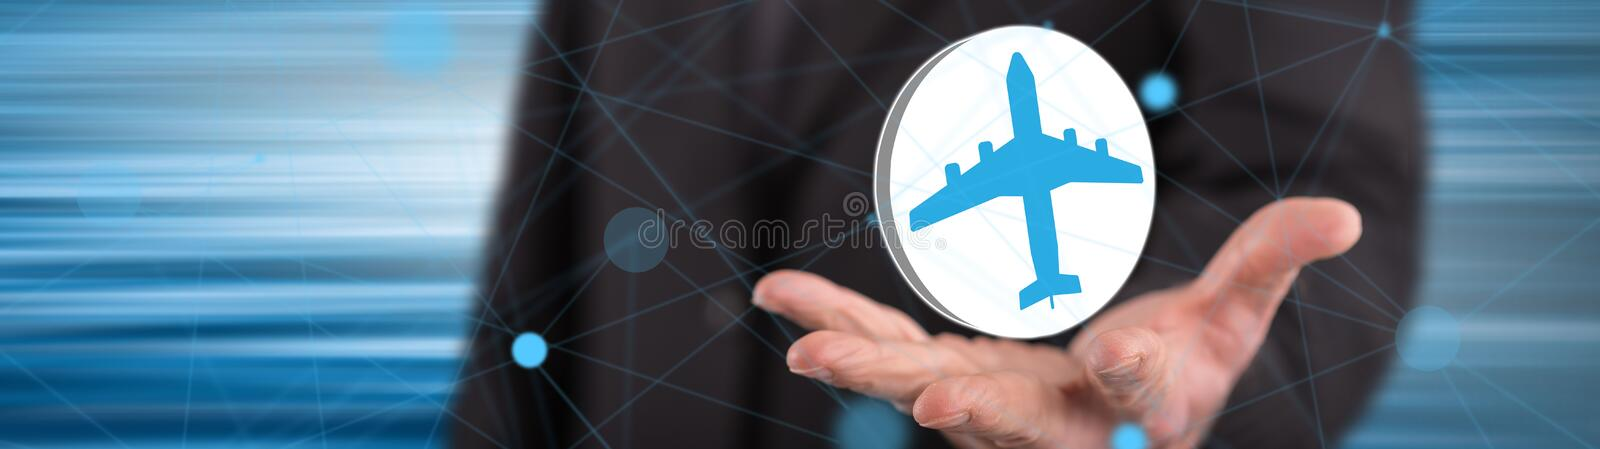 Concept of air transport. Air transport concept above the hand of a man in background royalty free stock photo